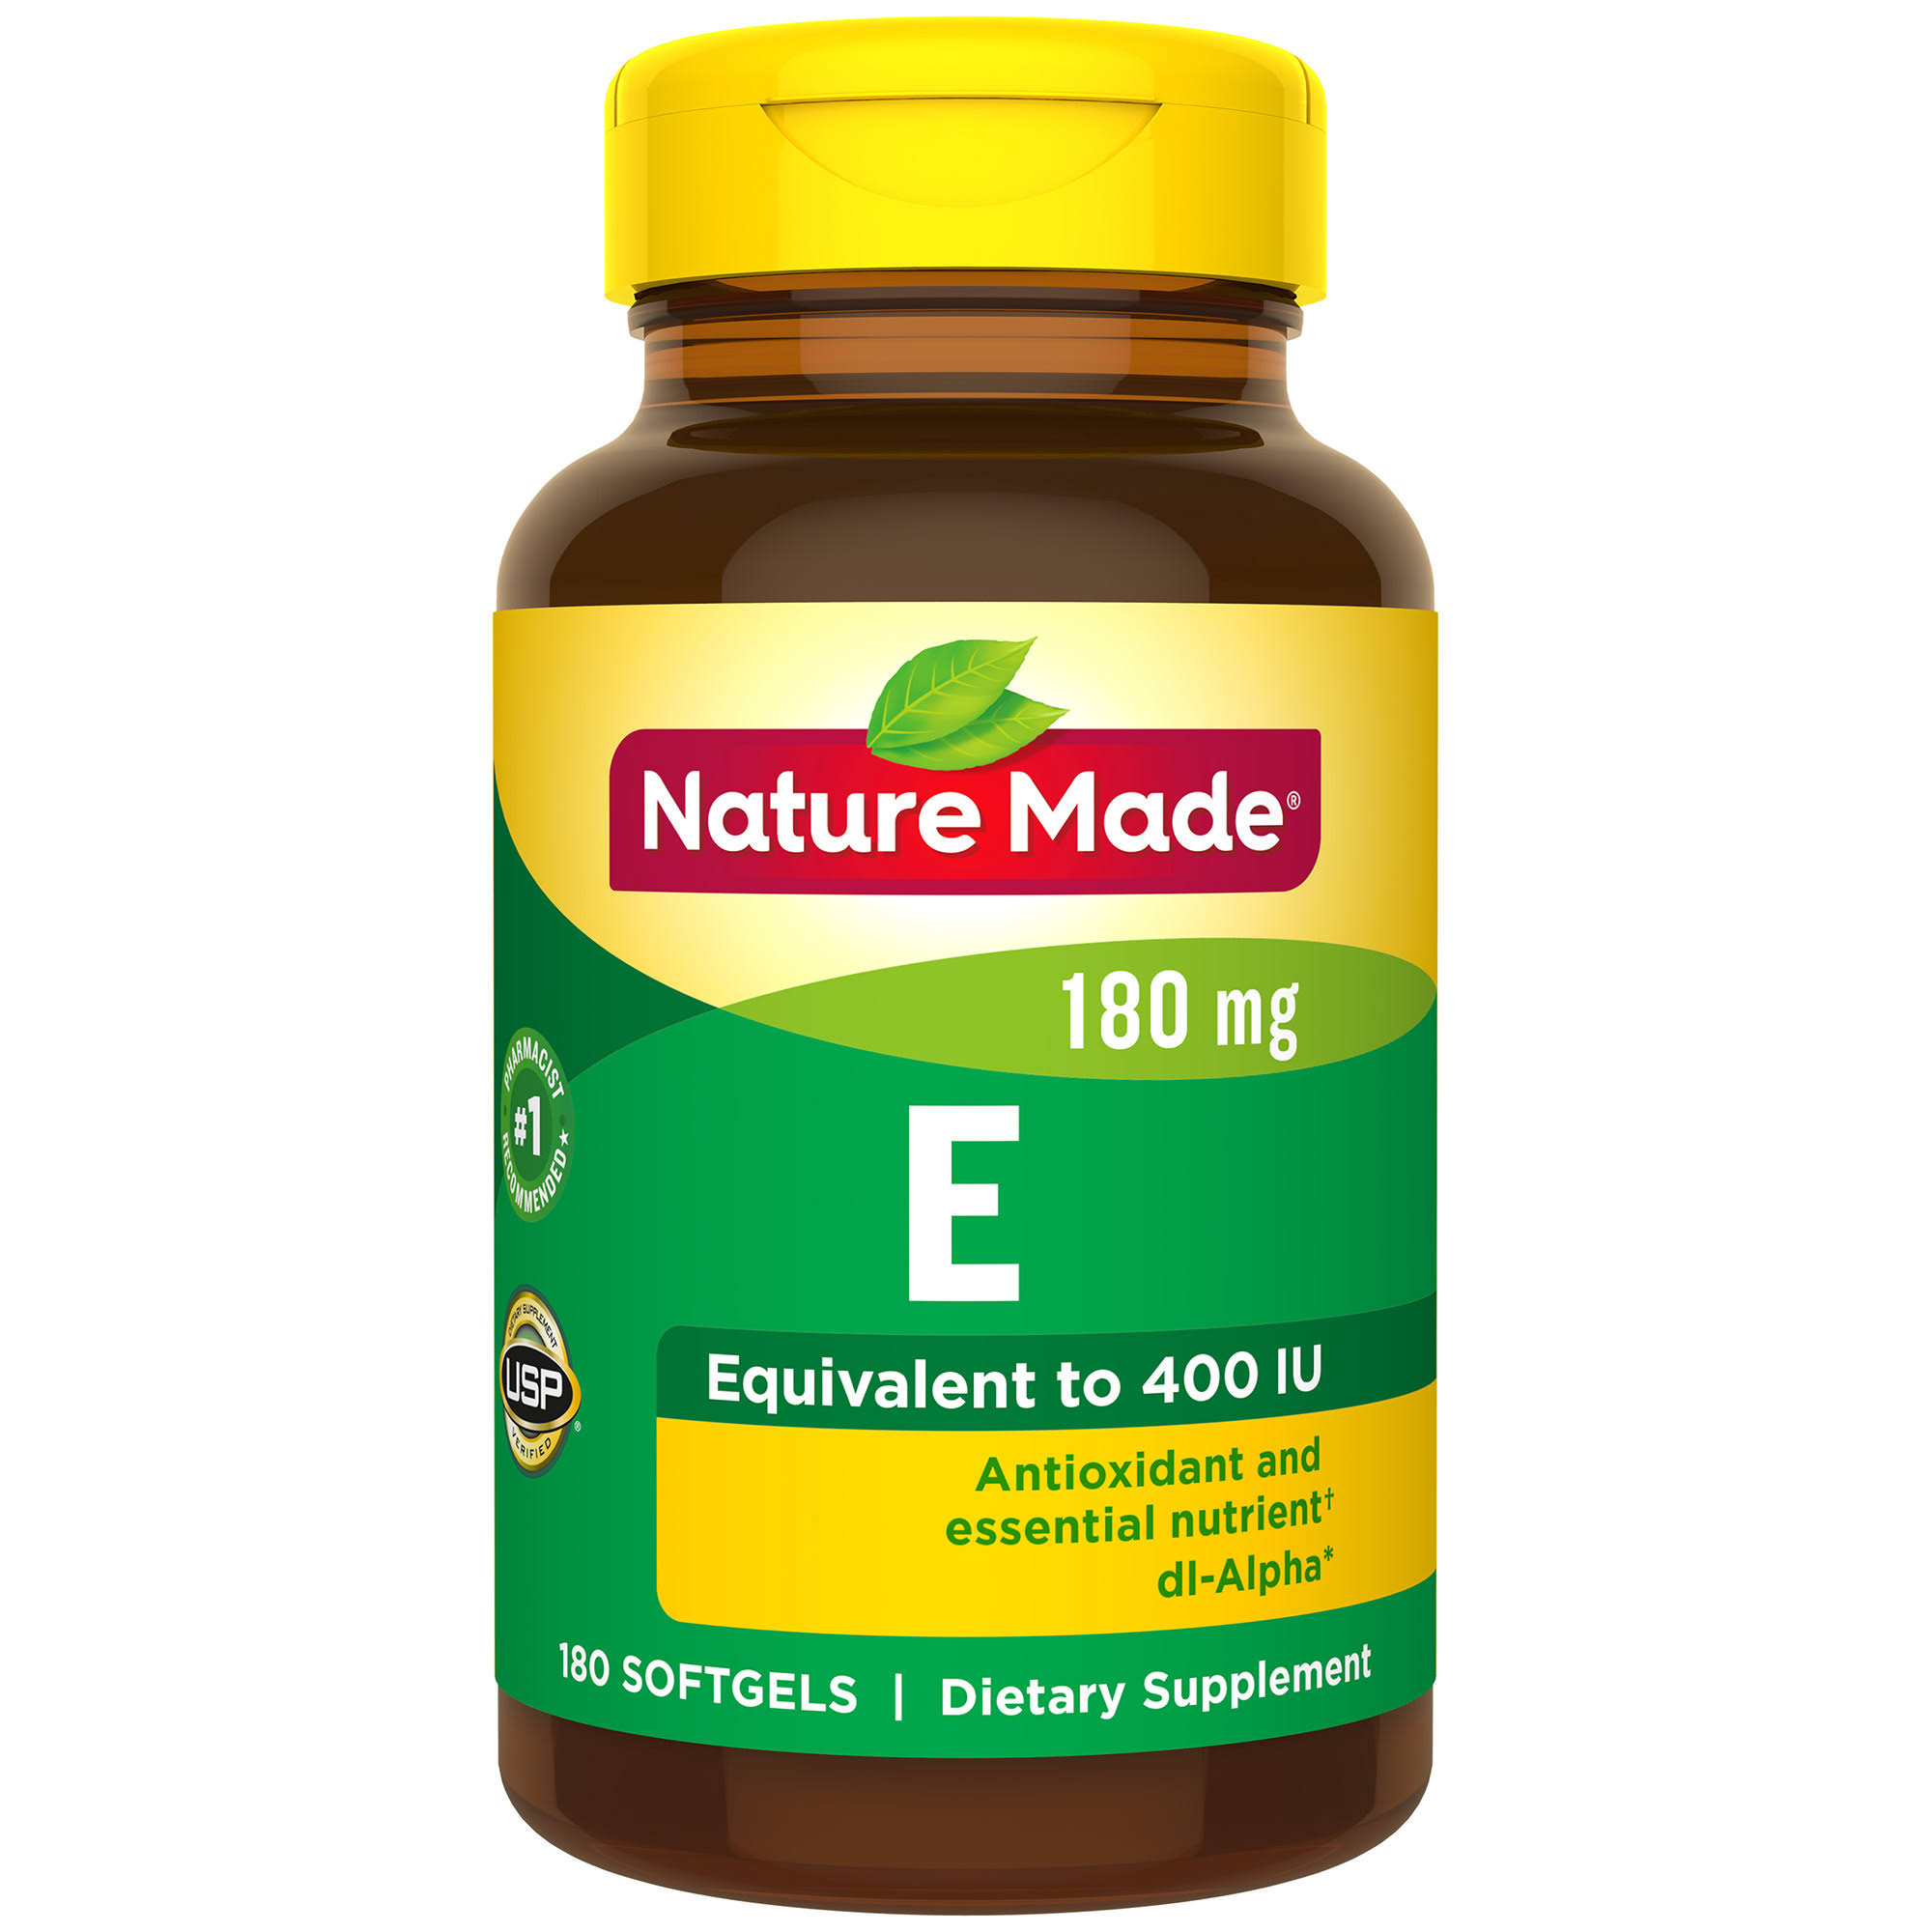 Nature Made Vitamin E Dl Alpha Dietary Supplement - 180 Softgels